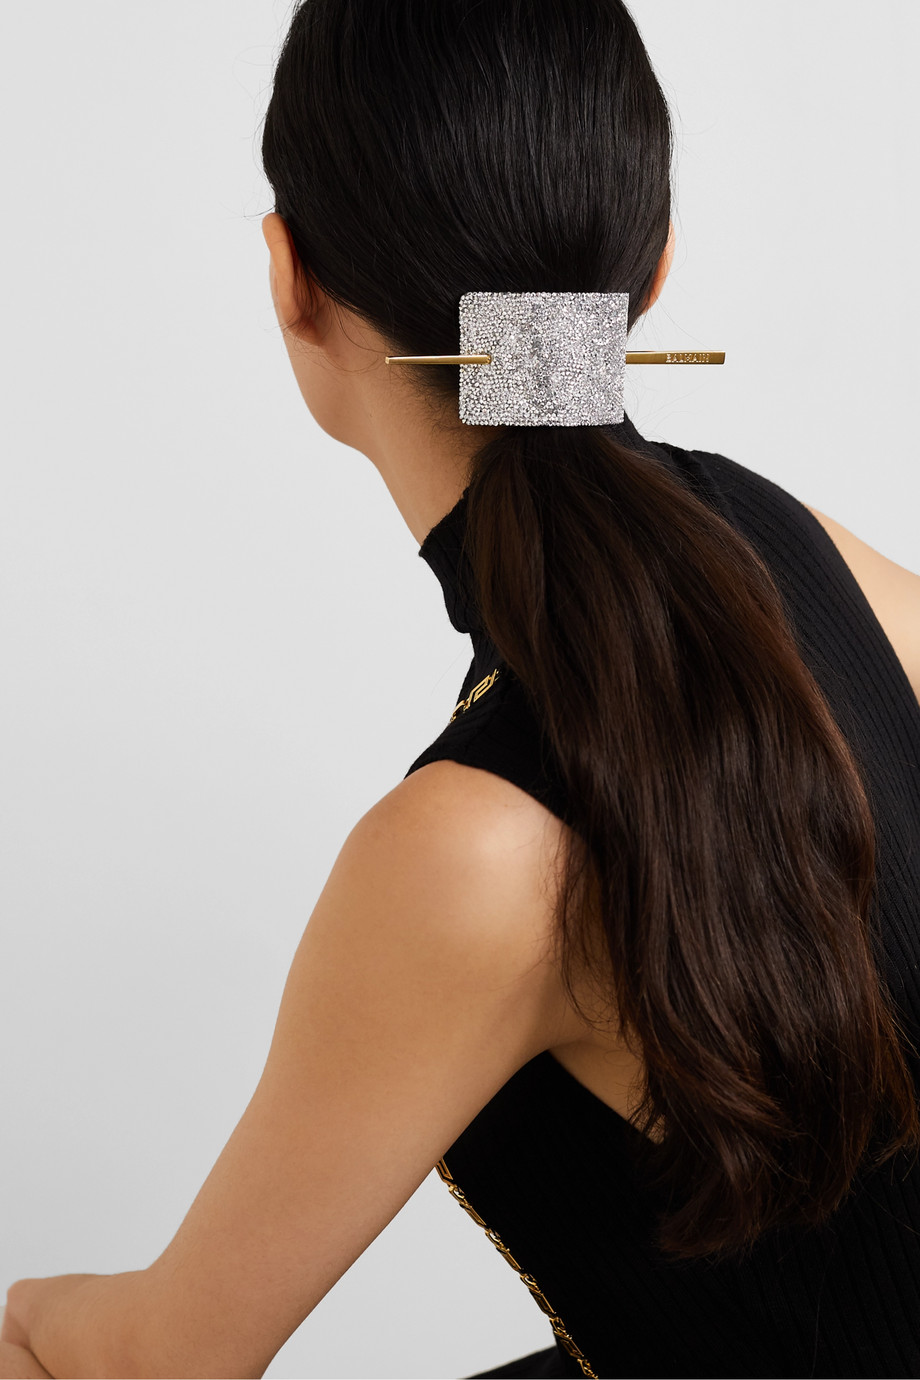 BALMAIN PARIS HAIR COUTURE Gold-tone, crystal and leather hair pin